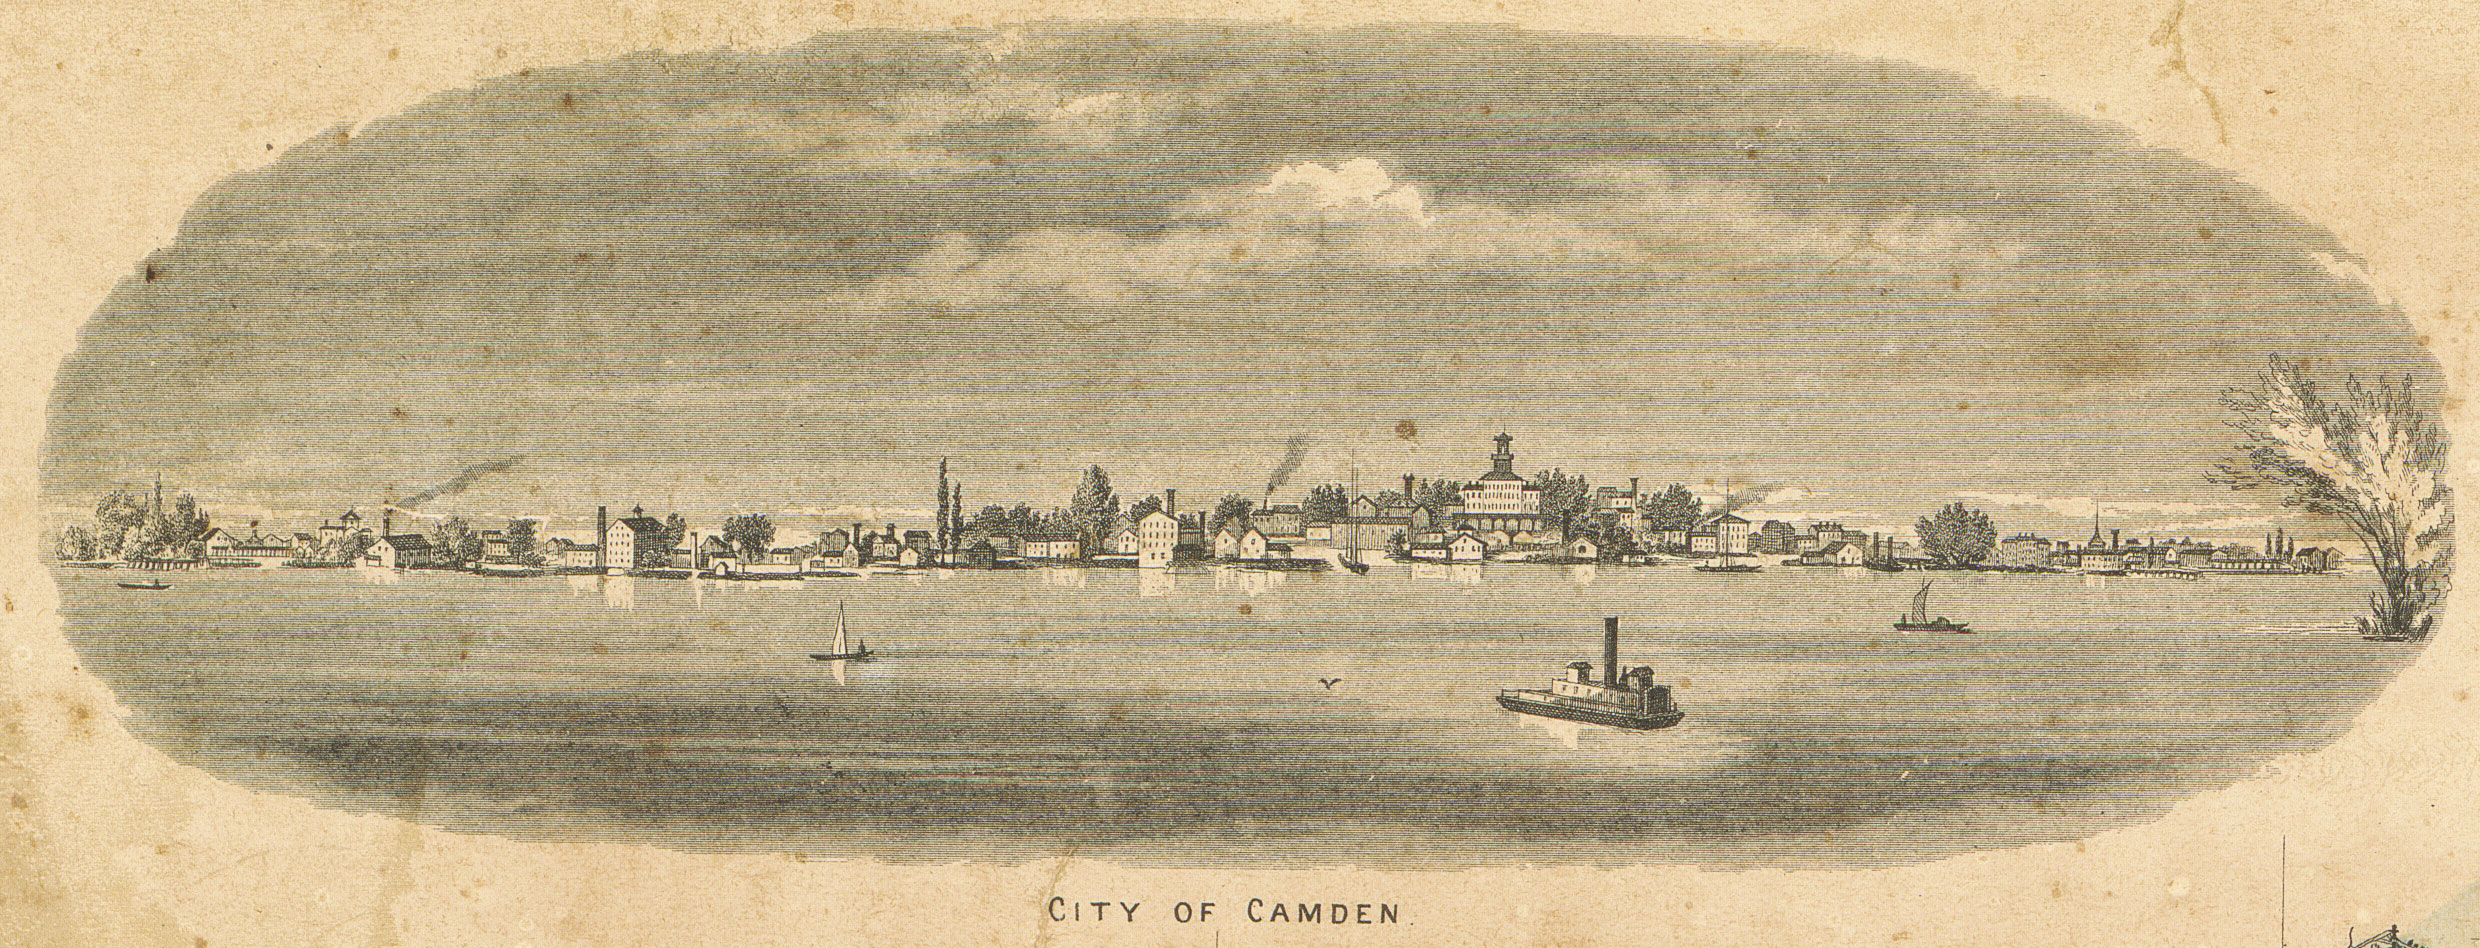 City of Camden